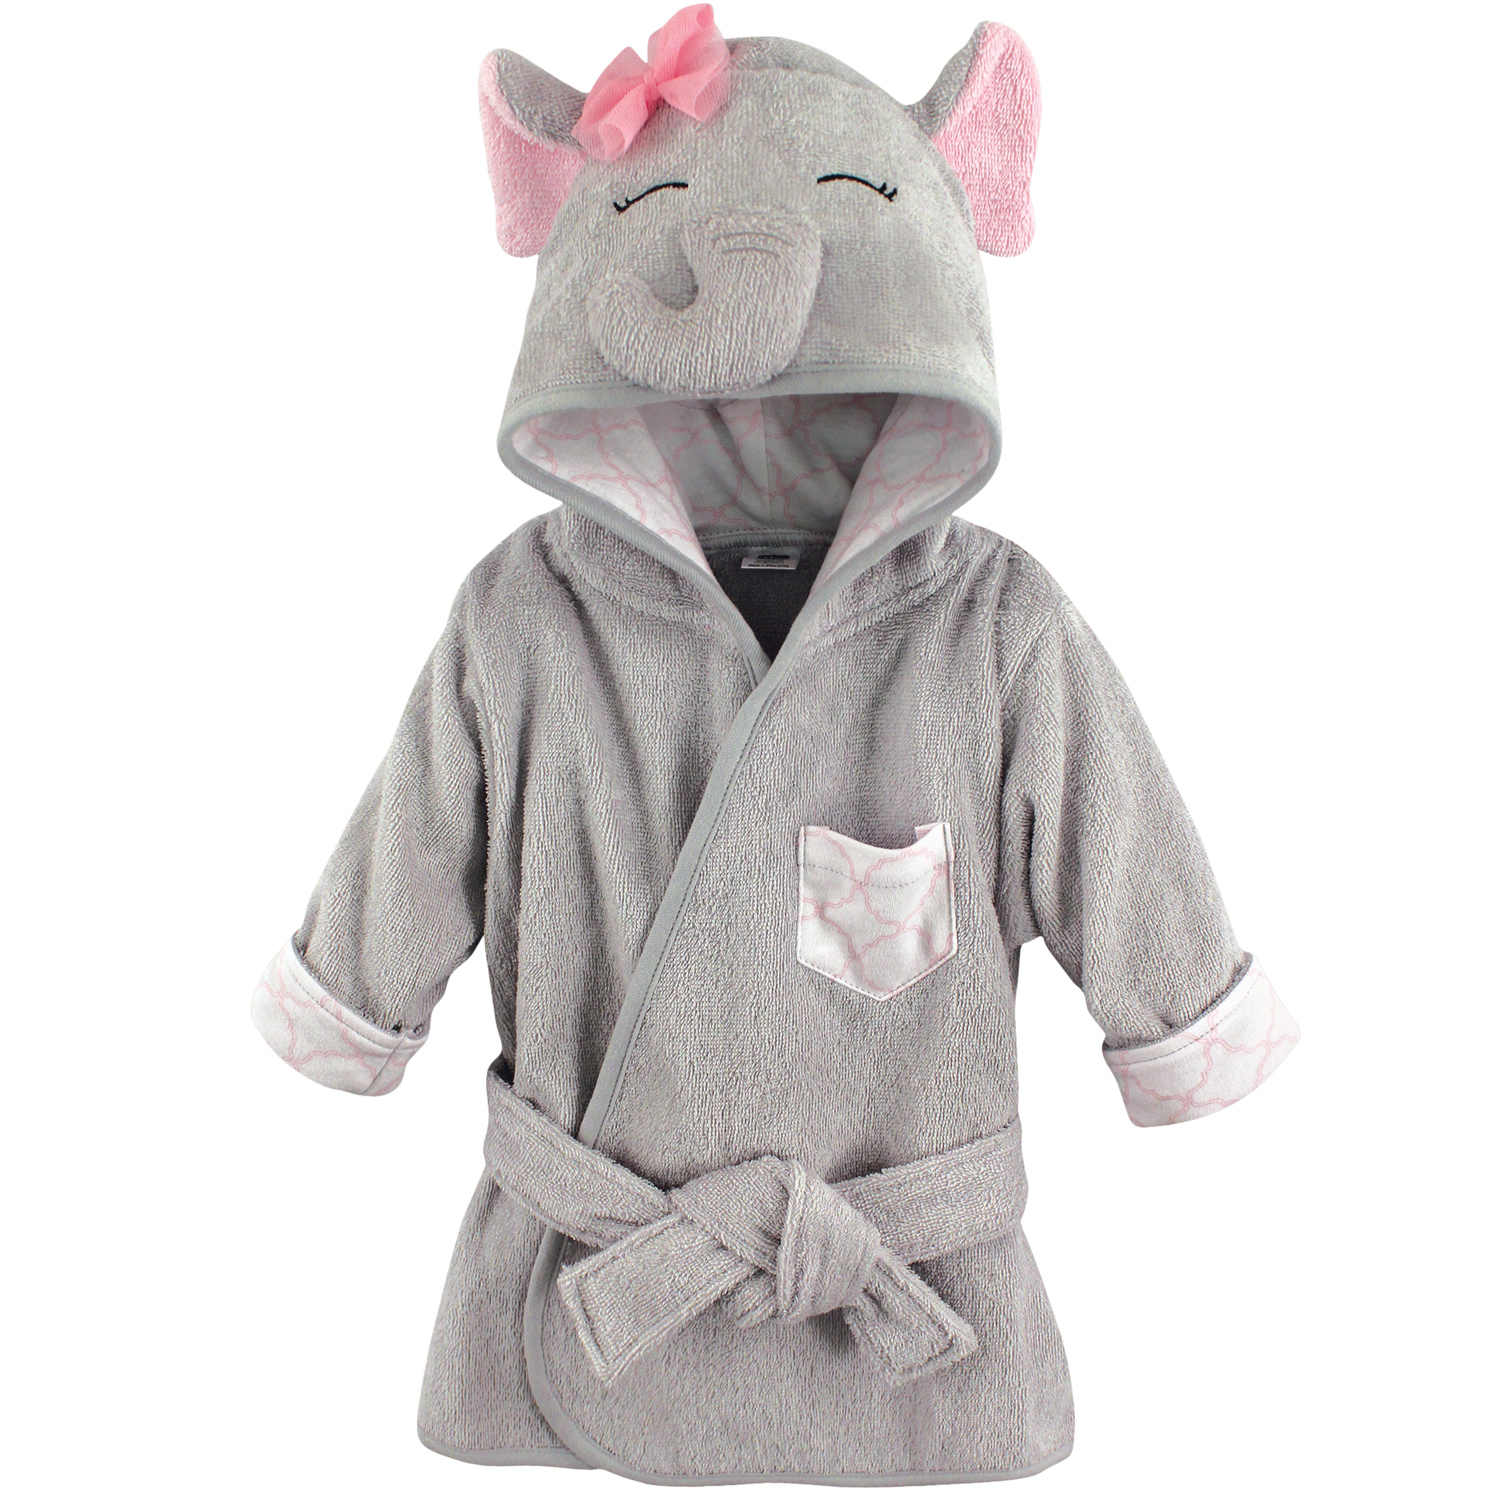 b8c1d5acb6 Woven Terry Animal Bathrobe - Mr. Elephant - Walmart.com